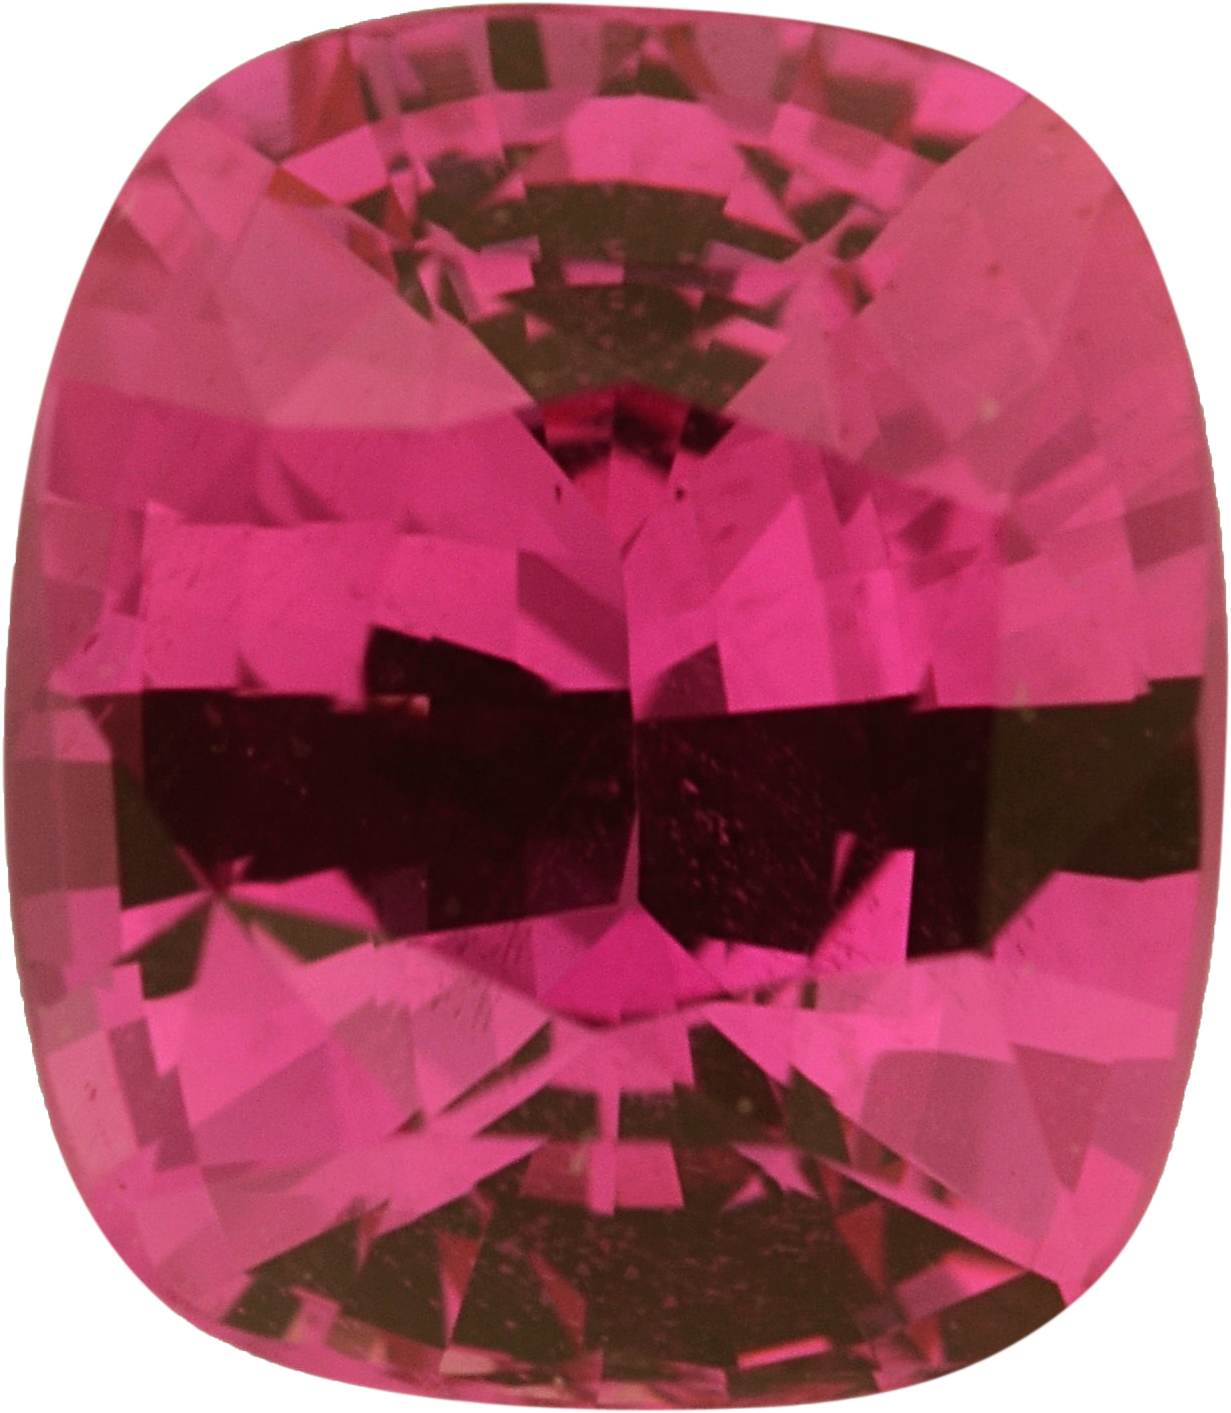 1.38 carats Antique Cushion Cut Genuine Pink Sapphire Gem, Purple Red, 6.95 x 6.02 mm